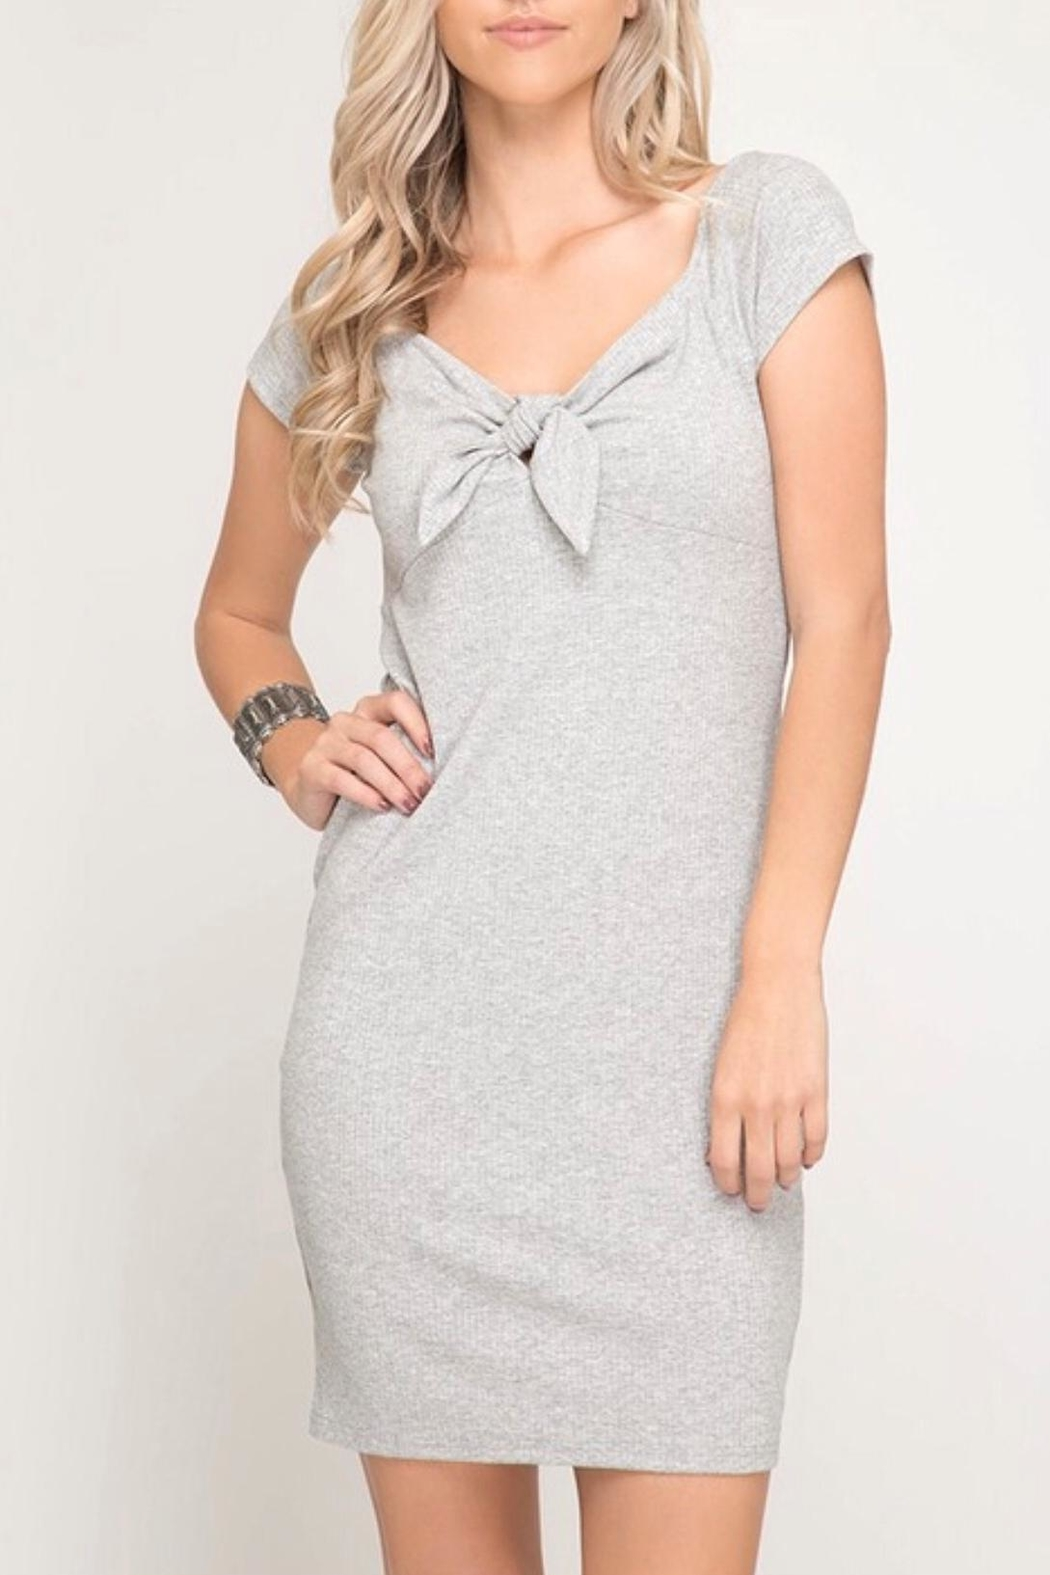 She + Sky Grey Bodycon Dress - Main Image